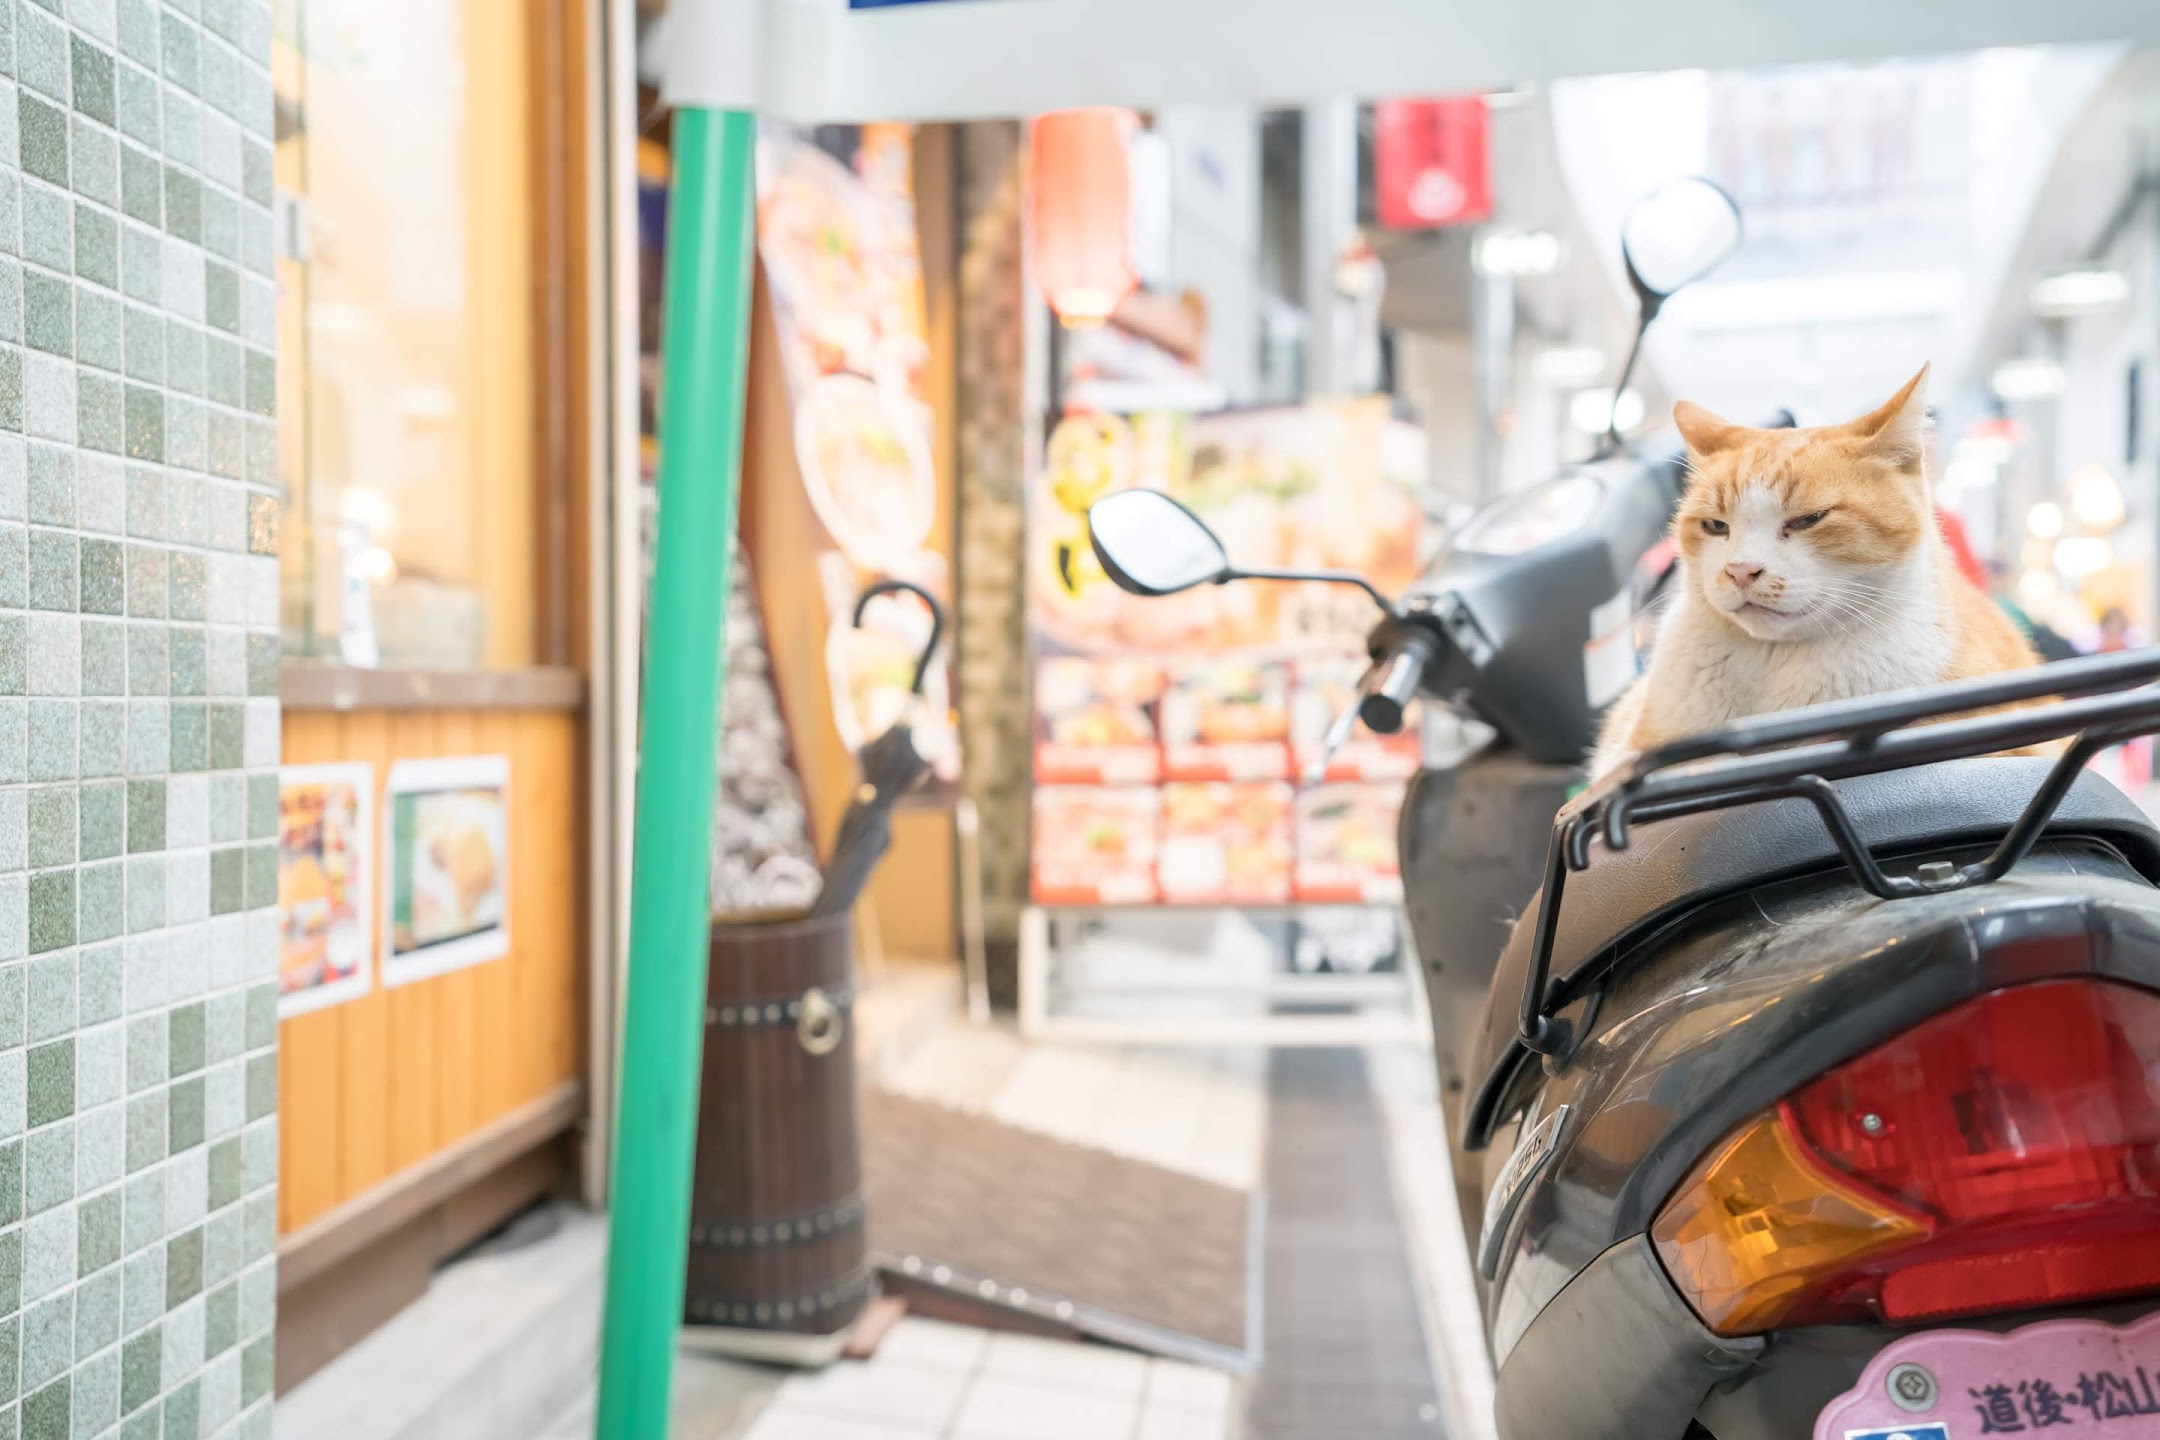 Dogo Shopping Arcade Cat1